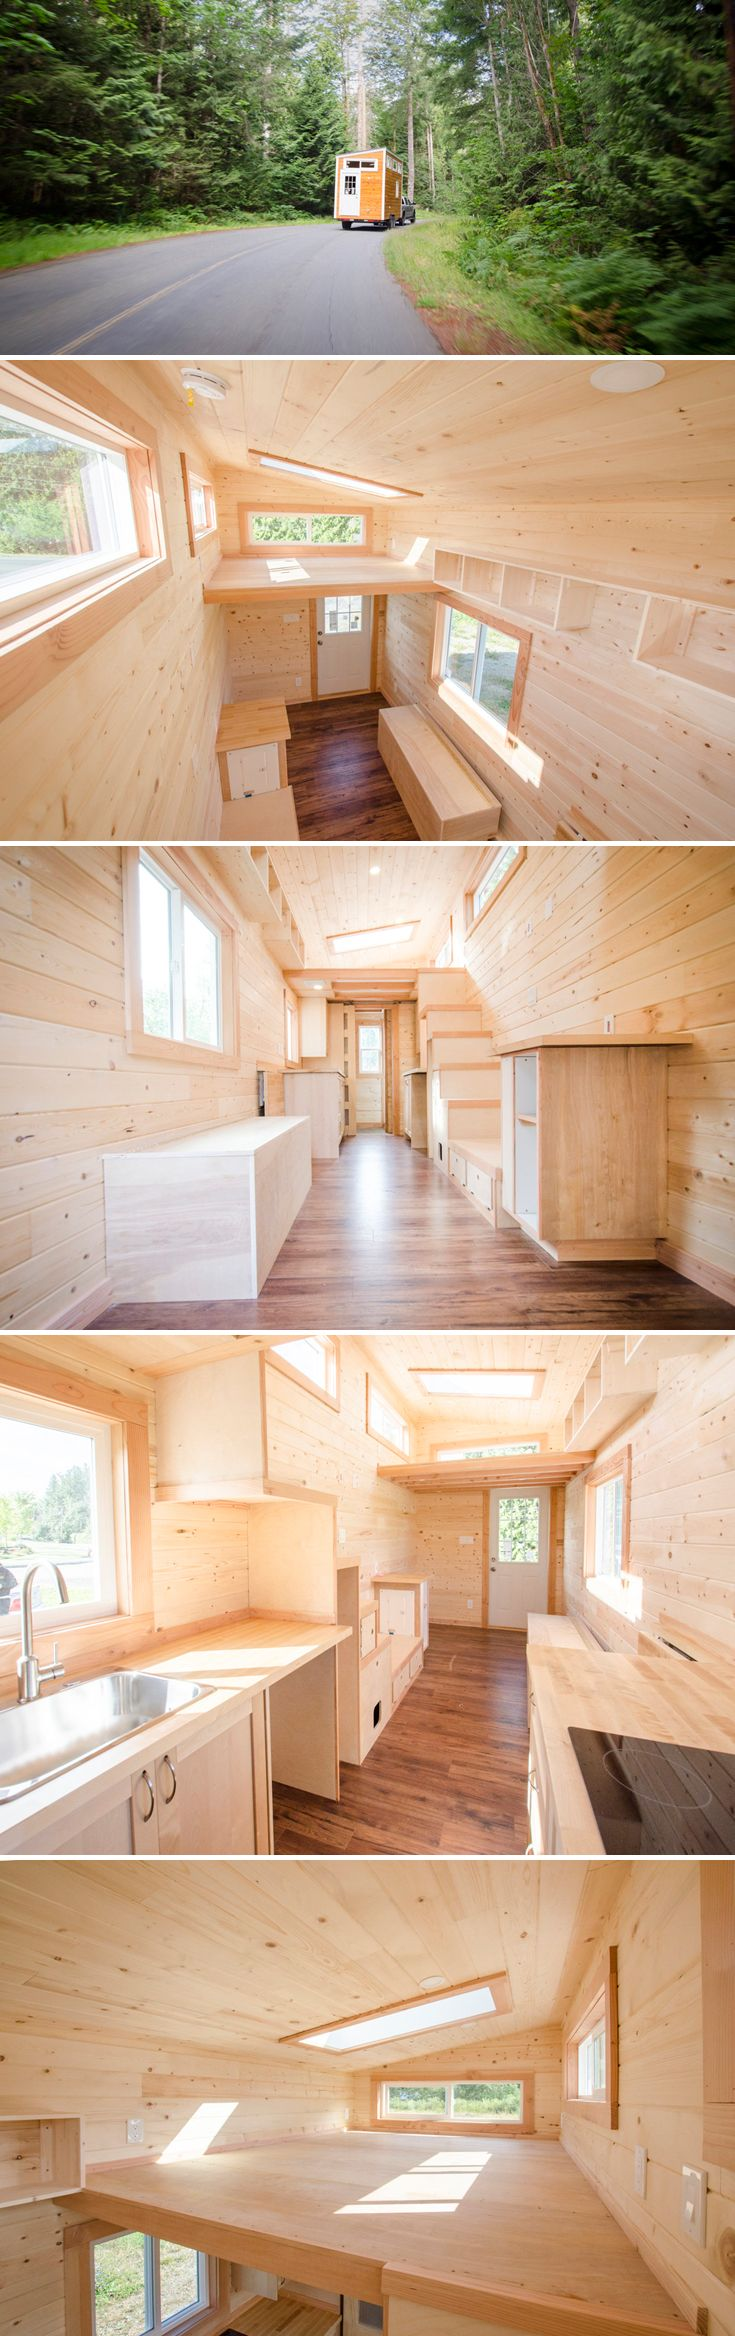 The Warbler is a 24' tiny house on wheels from British Columbia-based Rewild Homes. Clerestory windows and two skylights allow for plentiful natural light.